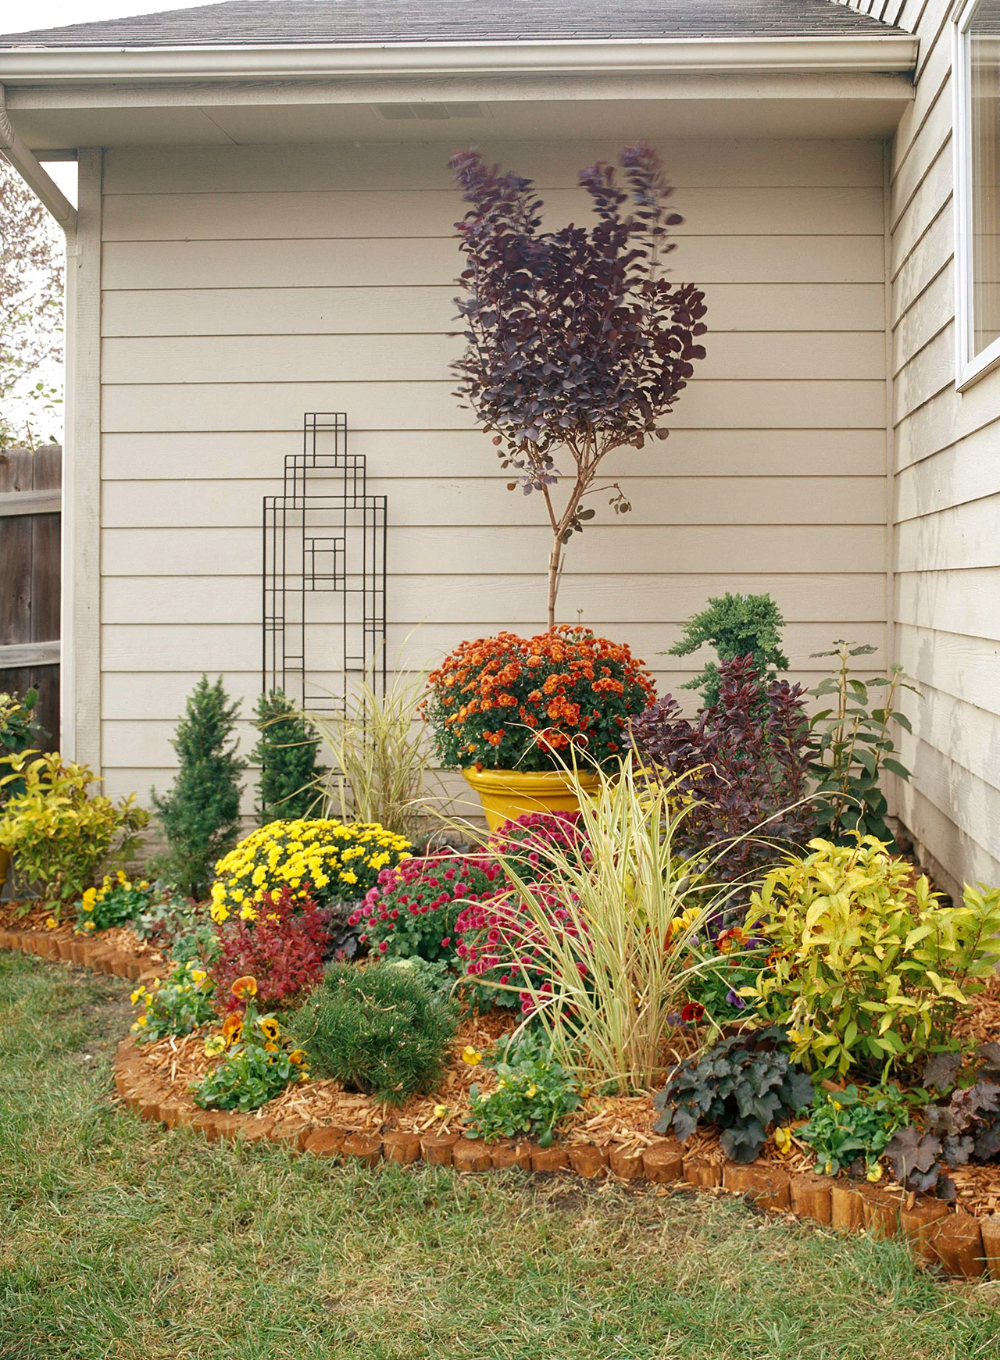 16 Simple Solutions For Small Space Landscapes In 2020 Small Backyard Gardens Landscape Ideas Front Yard Curb Appeal Backyard Landscaping